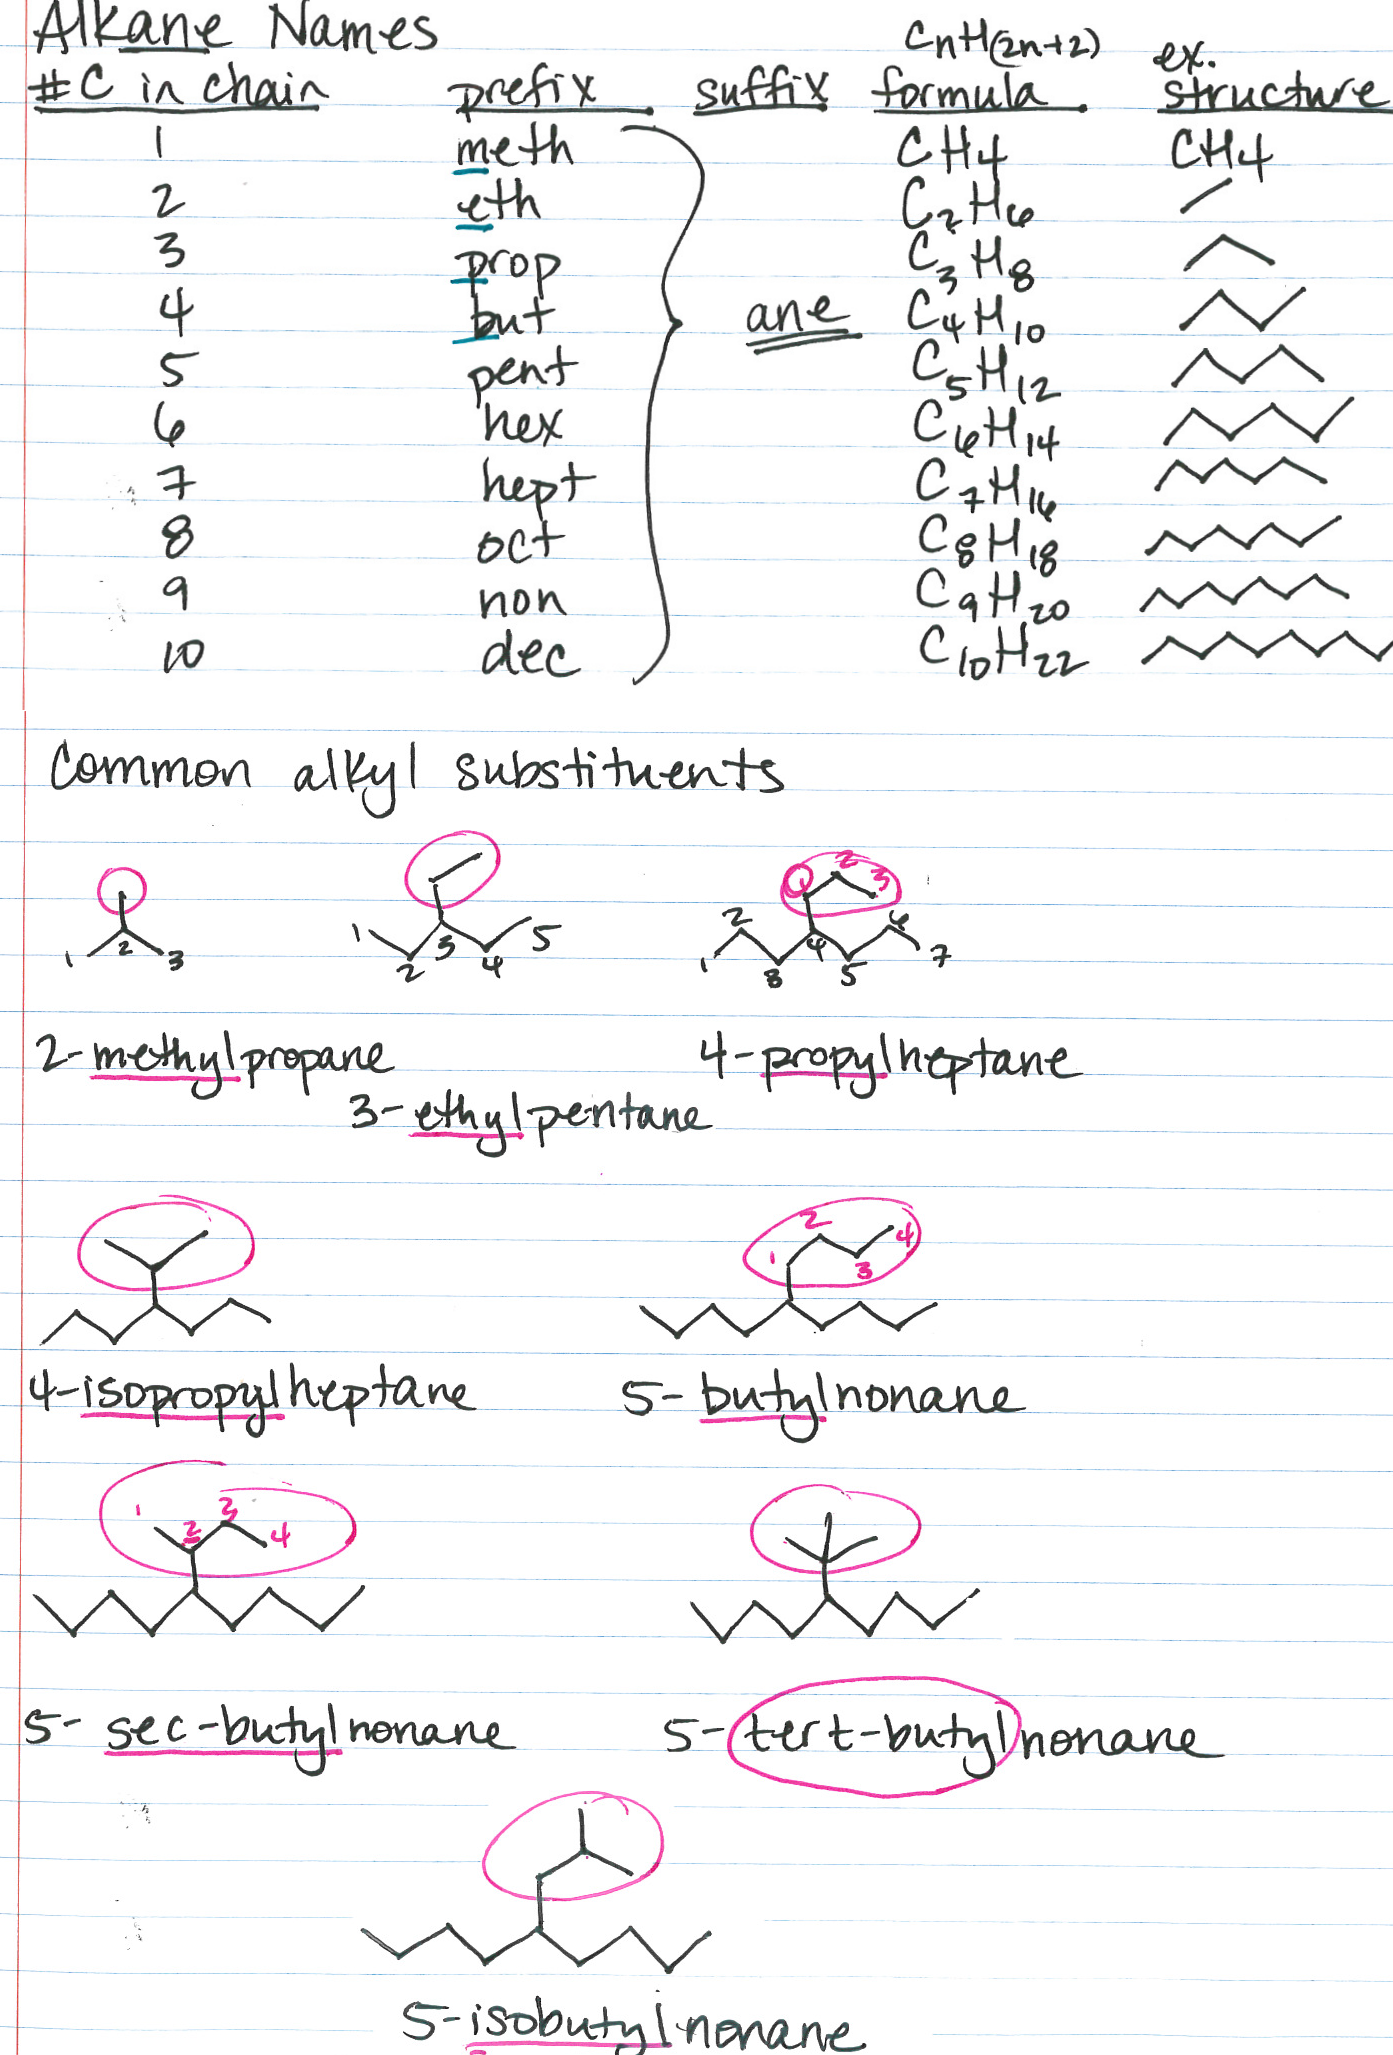 Organic Chemistry Nomenclature Alkane Names Common